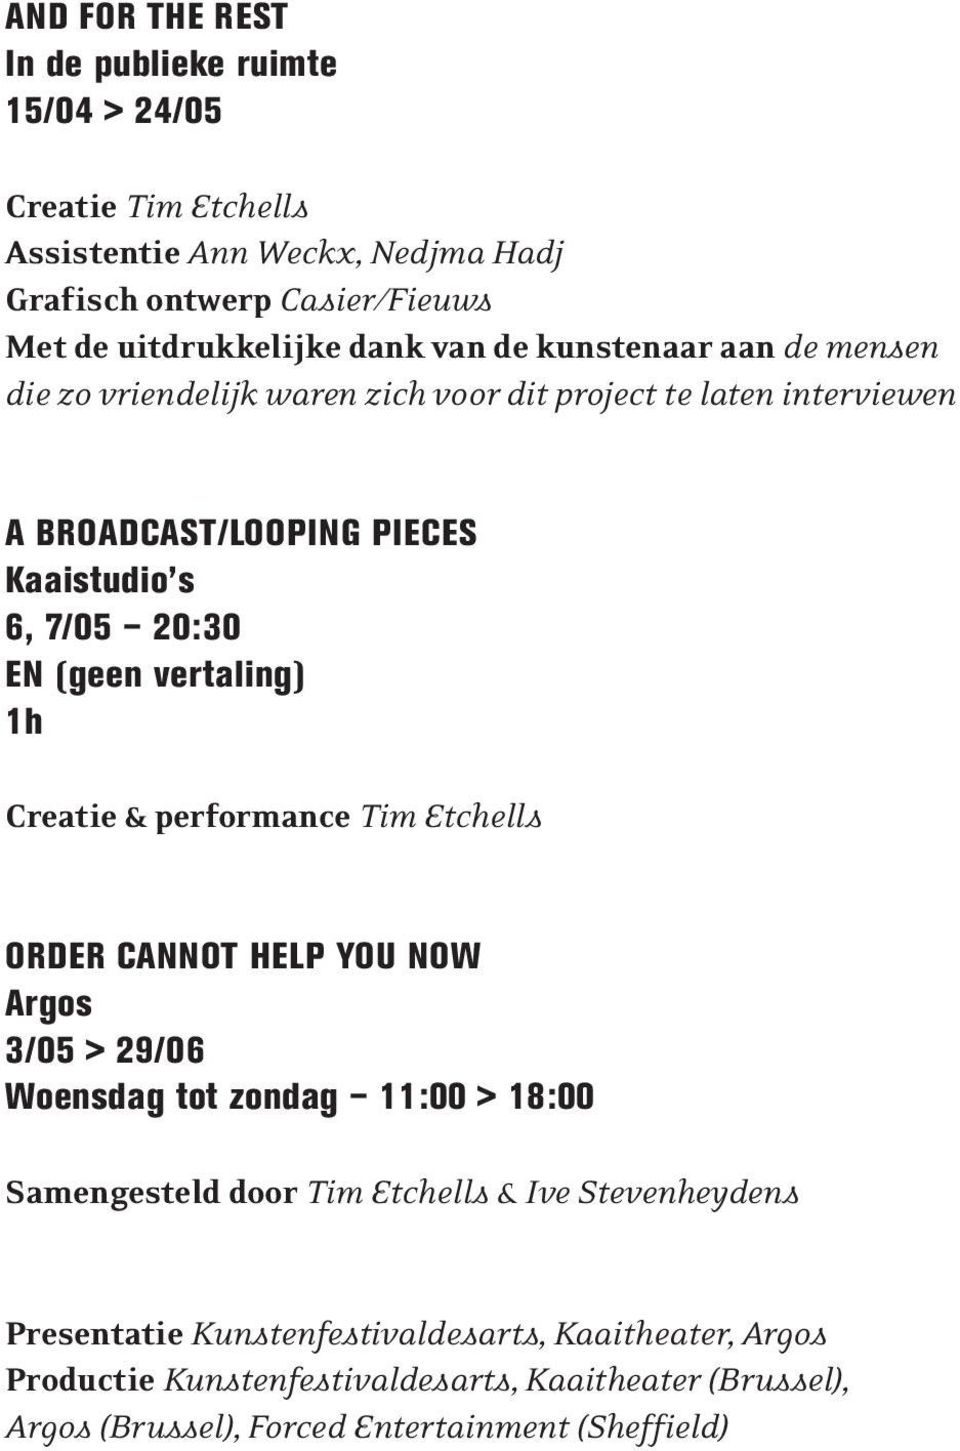 vertaling) 1h Creatie & performance Tim Etchells ORDER CANNOT HELP YOU NOW Argos 3/05 > 29/06 Woensdag tot zondag 11:00 > 18:00 Samengesteld door Tim Etchells & Ive